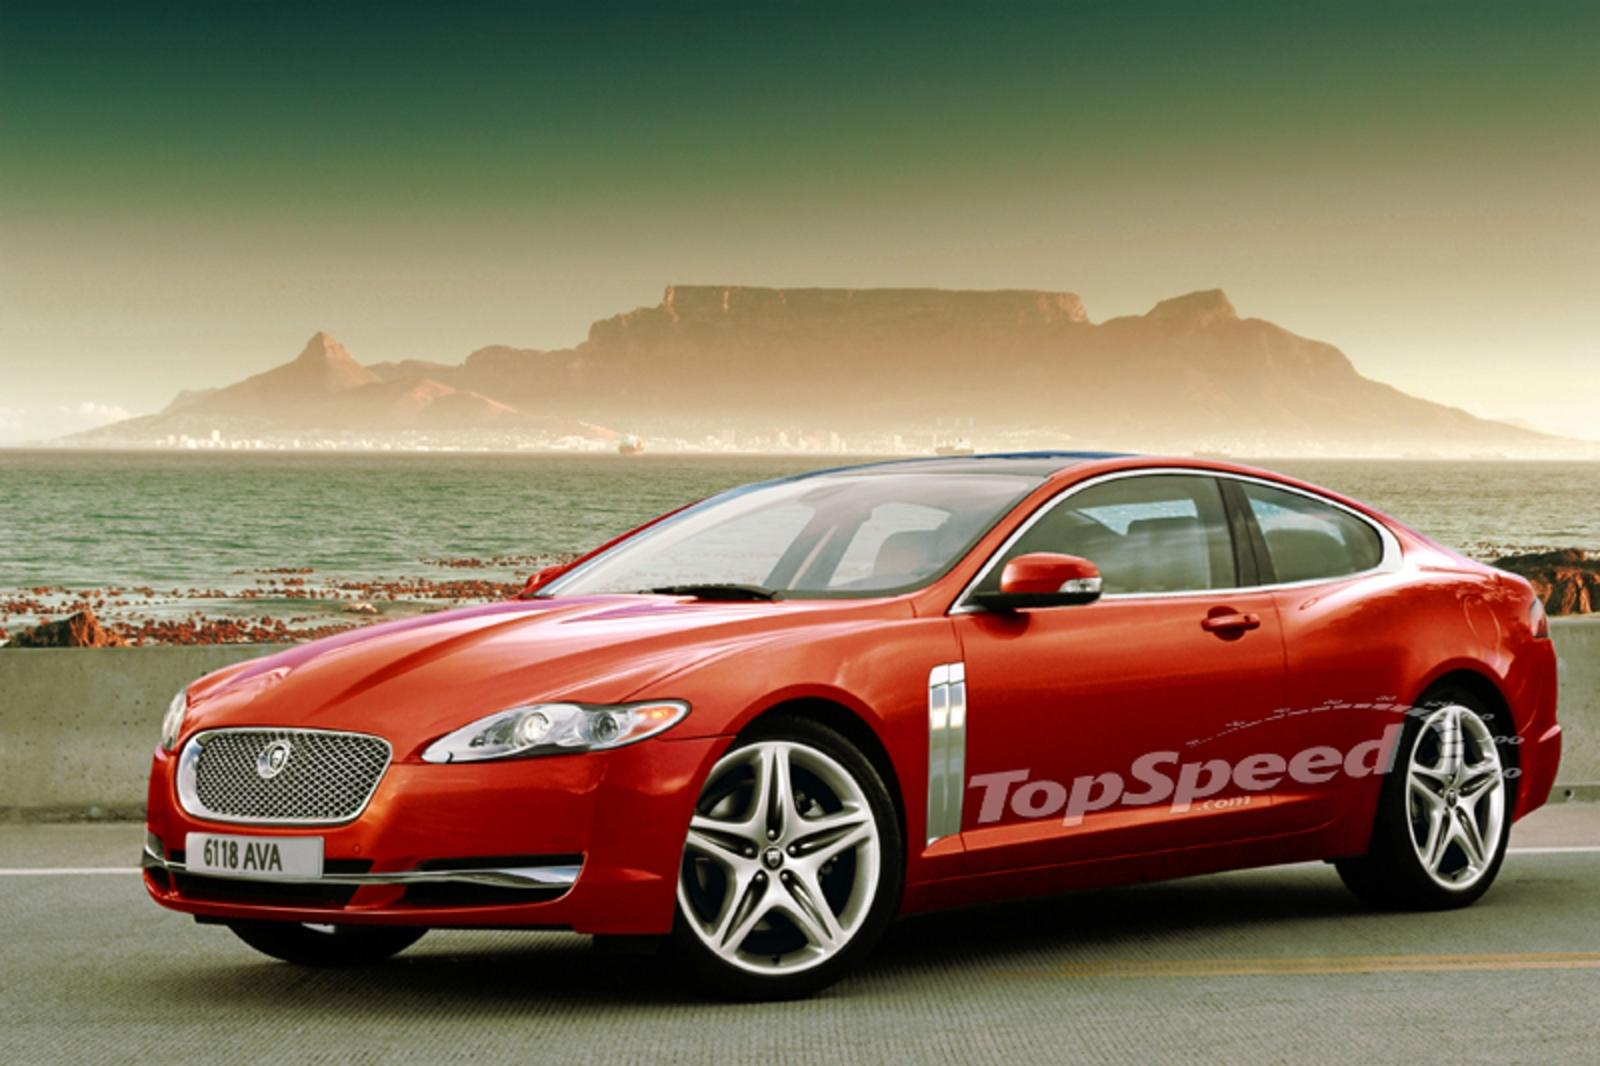 2010 jaguar xf coupe review top speed. Black Bedroom Furniture Sets. Home Design Ideas